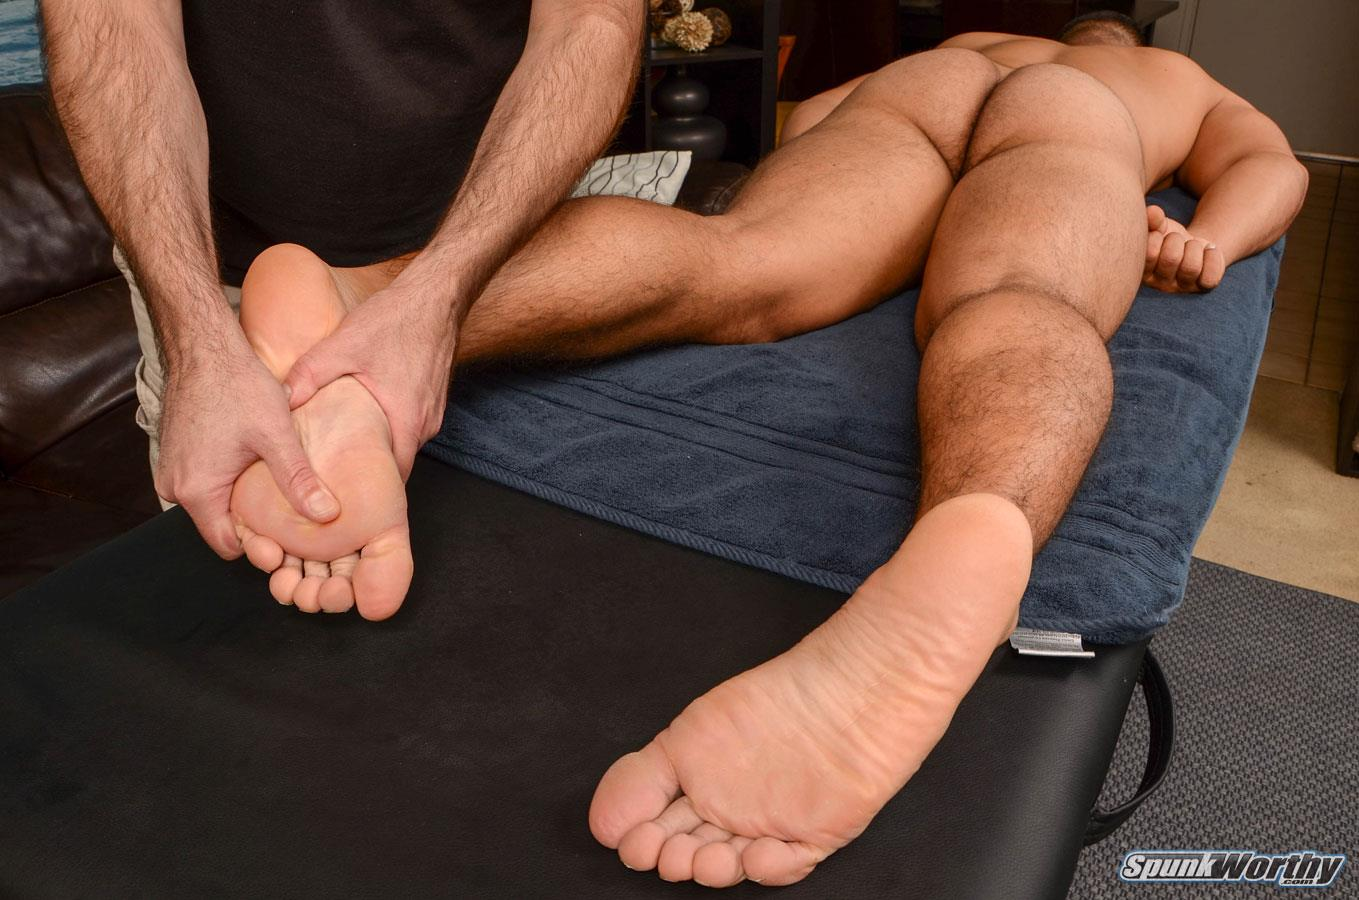 SpunkWorthy-Colt-Beefy-Naked-Marine-Gets-Handjob-From-A-Guy-Amateur-Gay-Porn-08 Straight Beefy US Marine Gets His First Handjob From A Guy